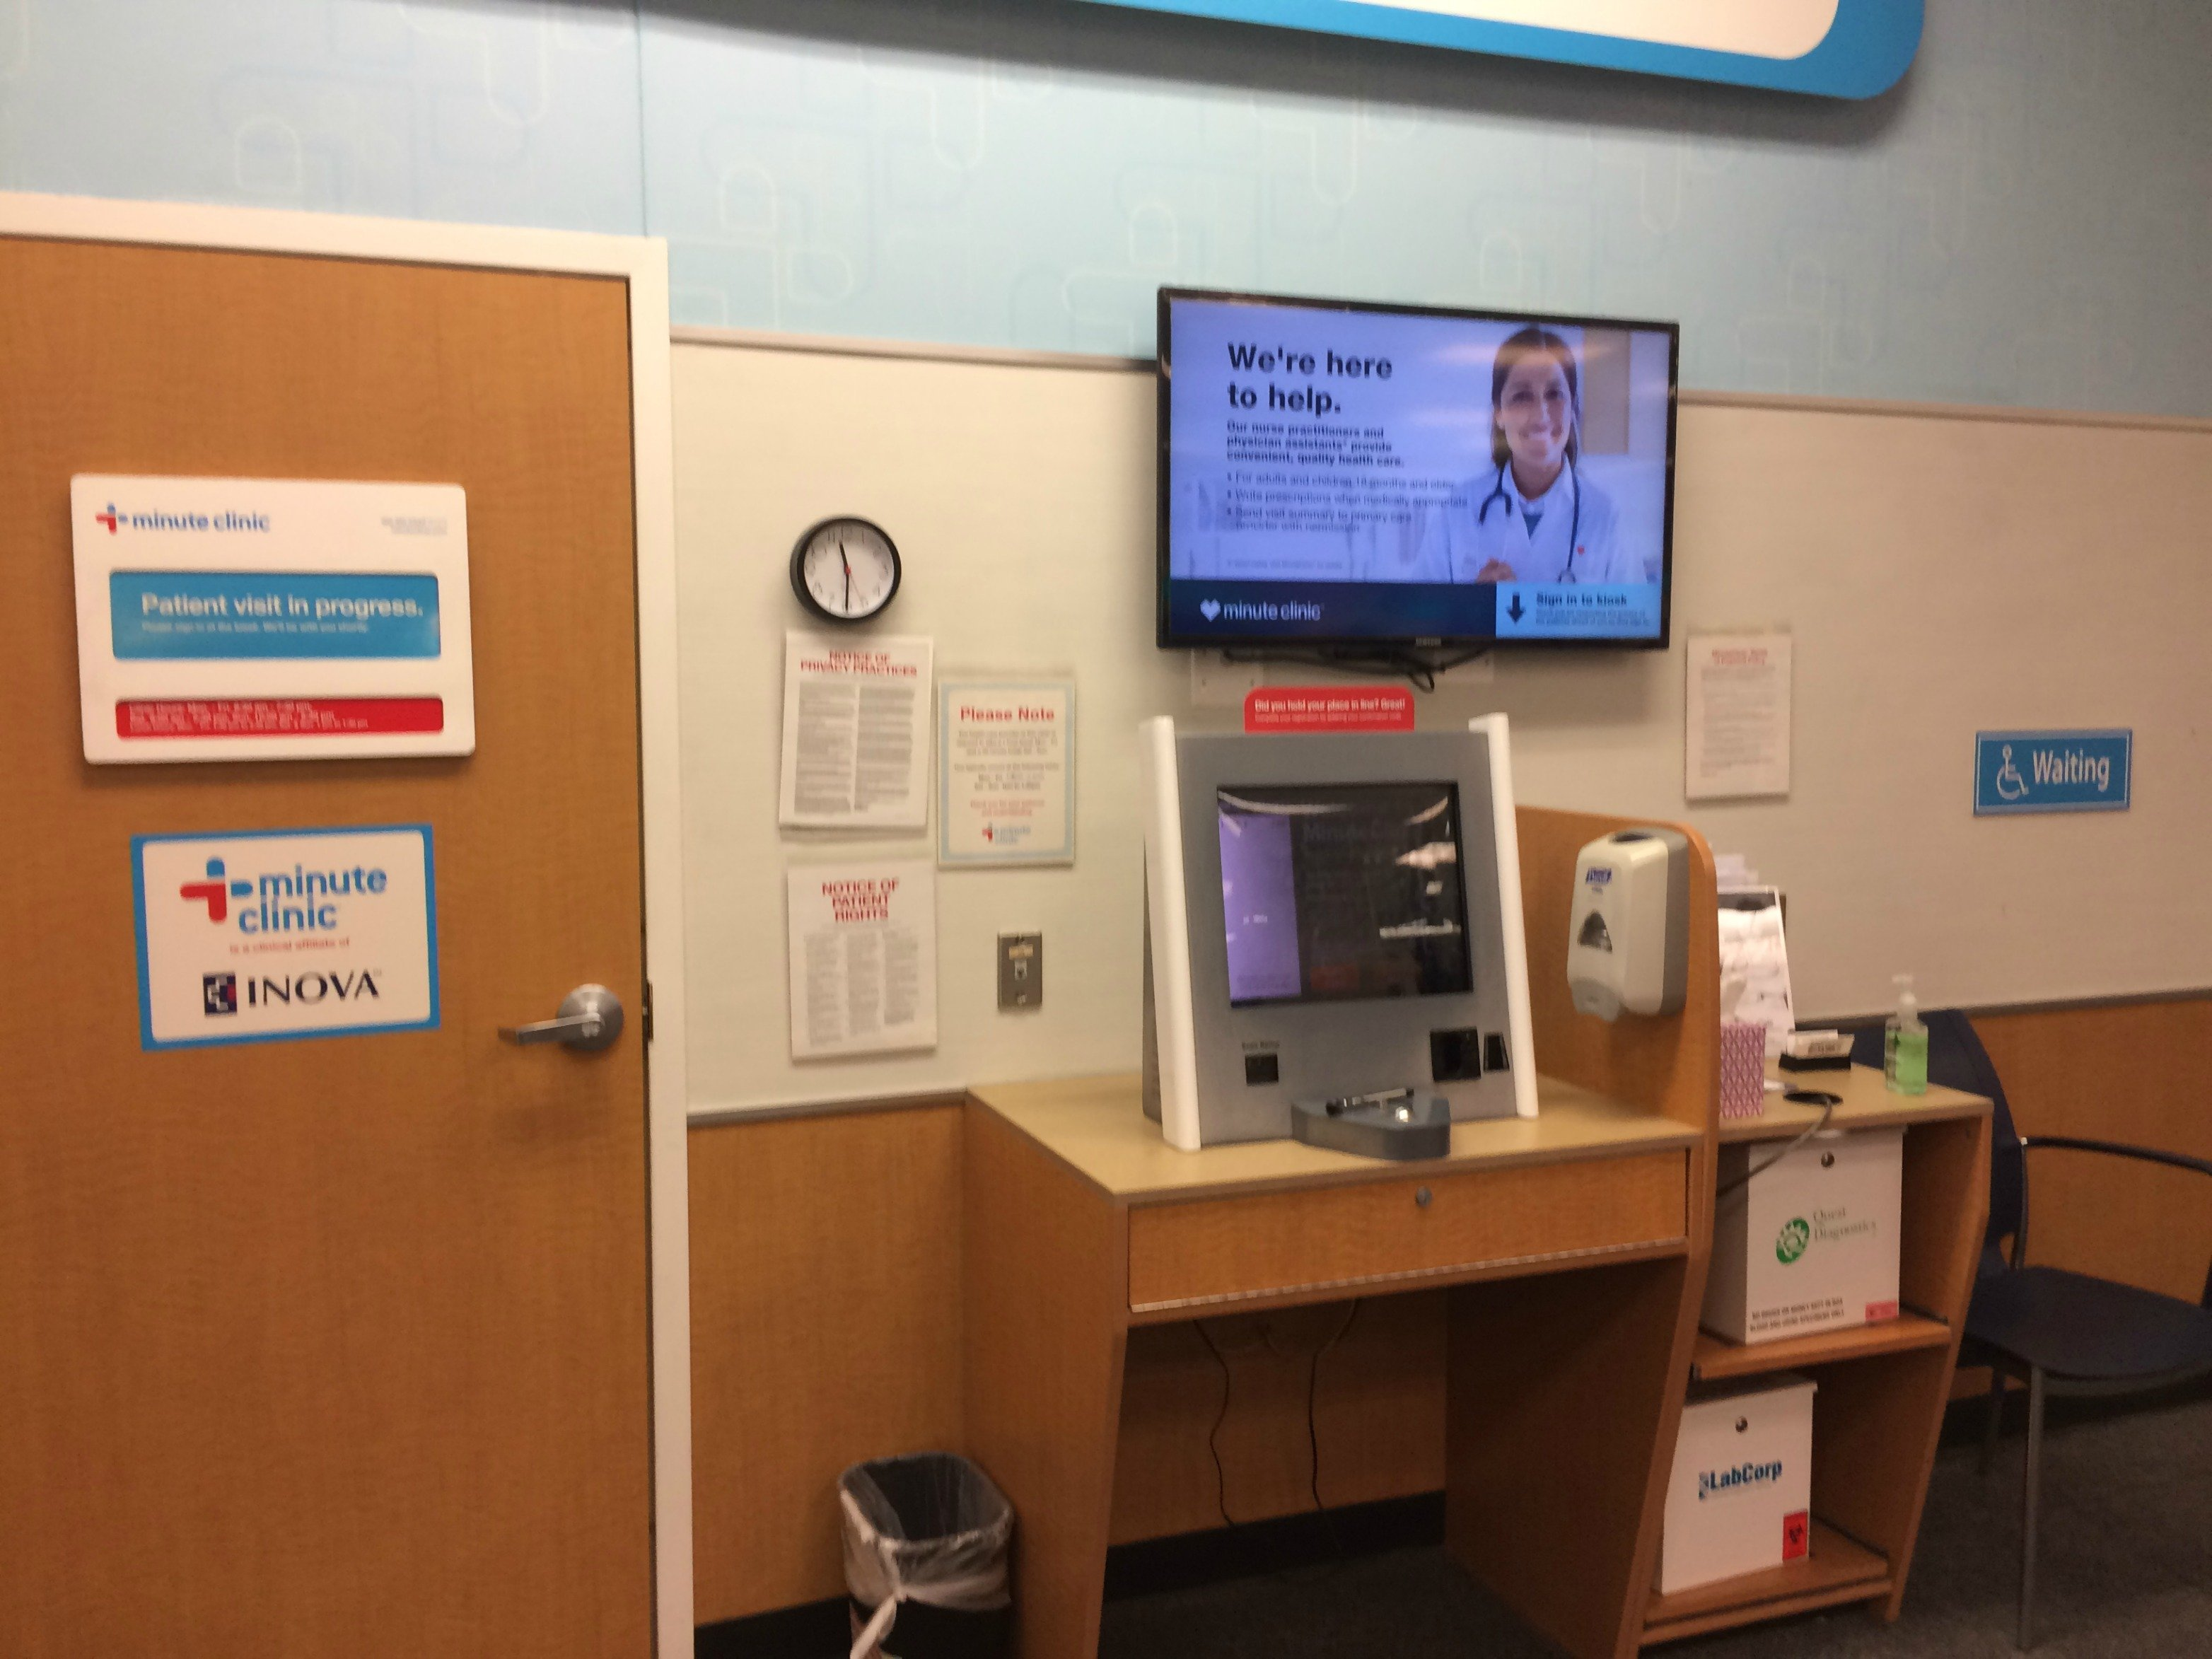 minuteclinic real waiting room